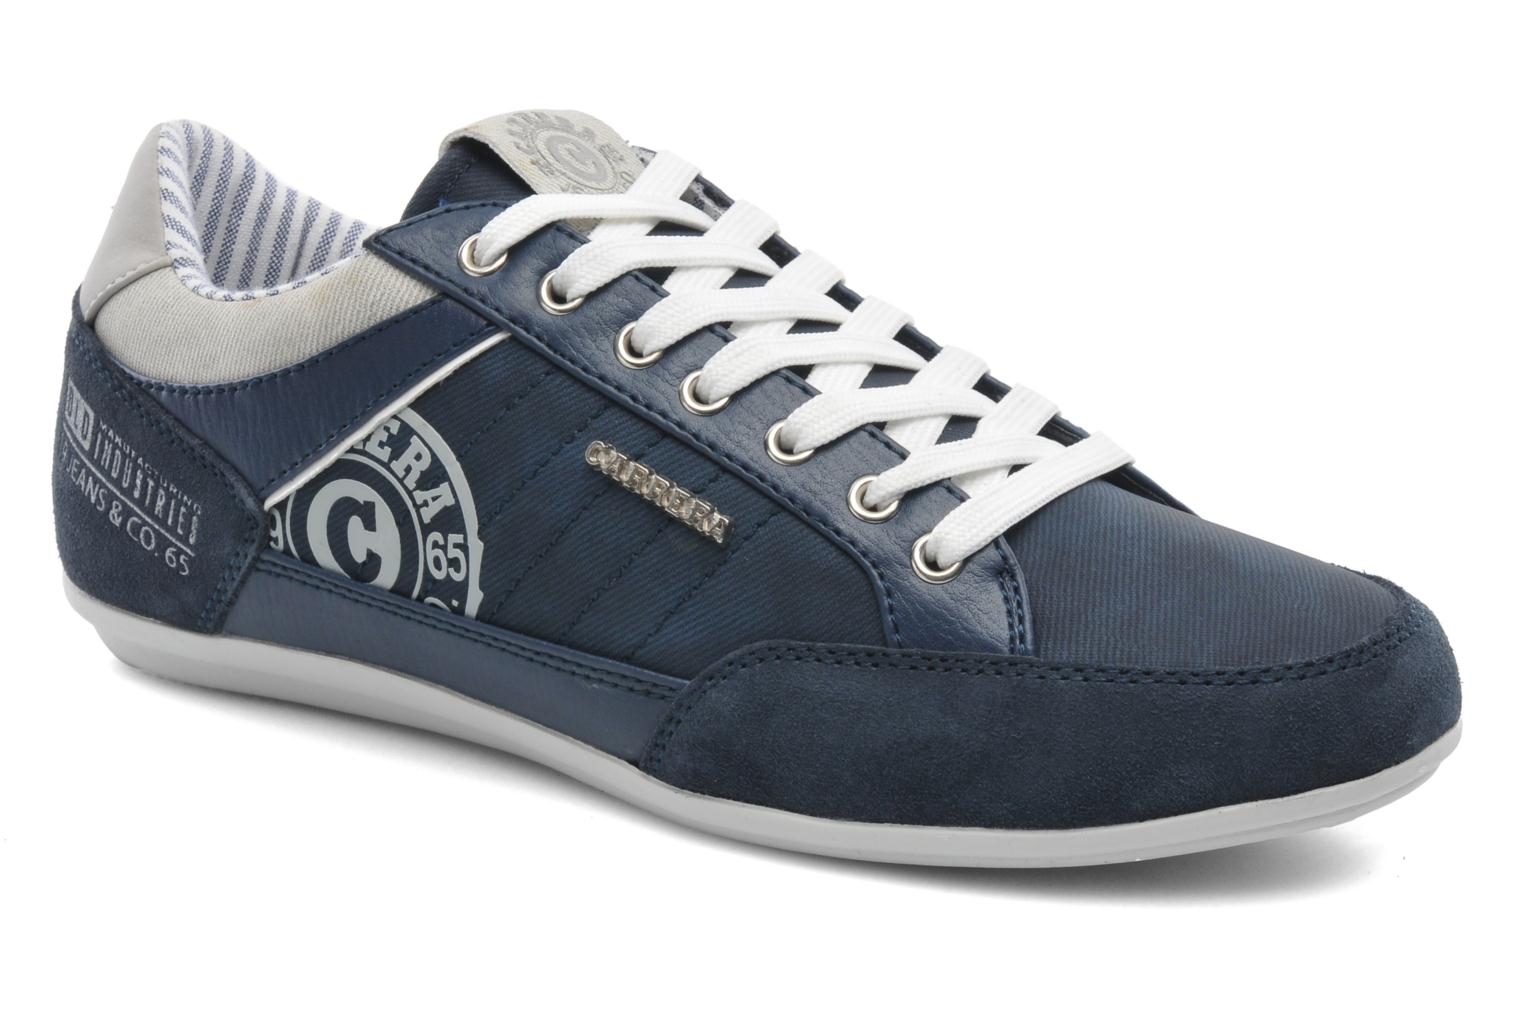 Sneakers Nettuno by Carrera